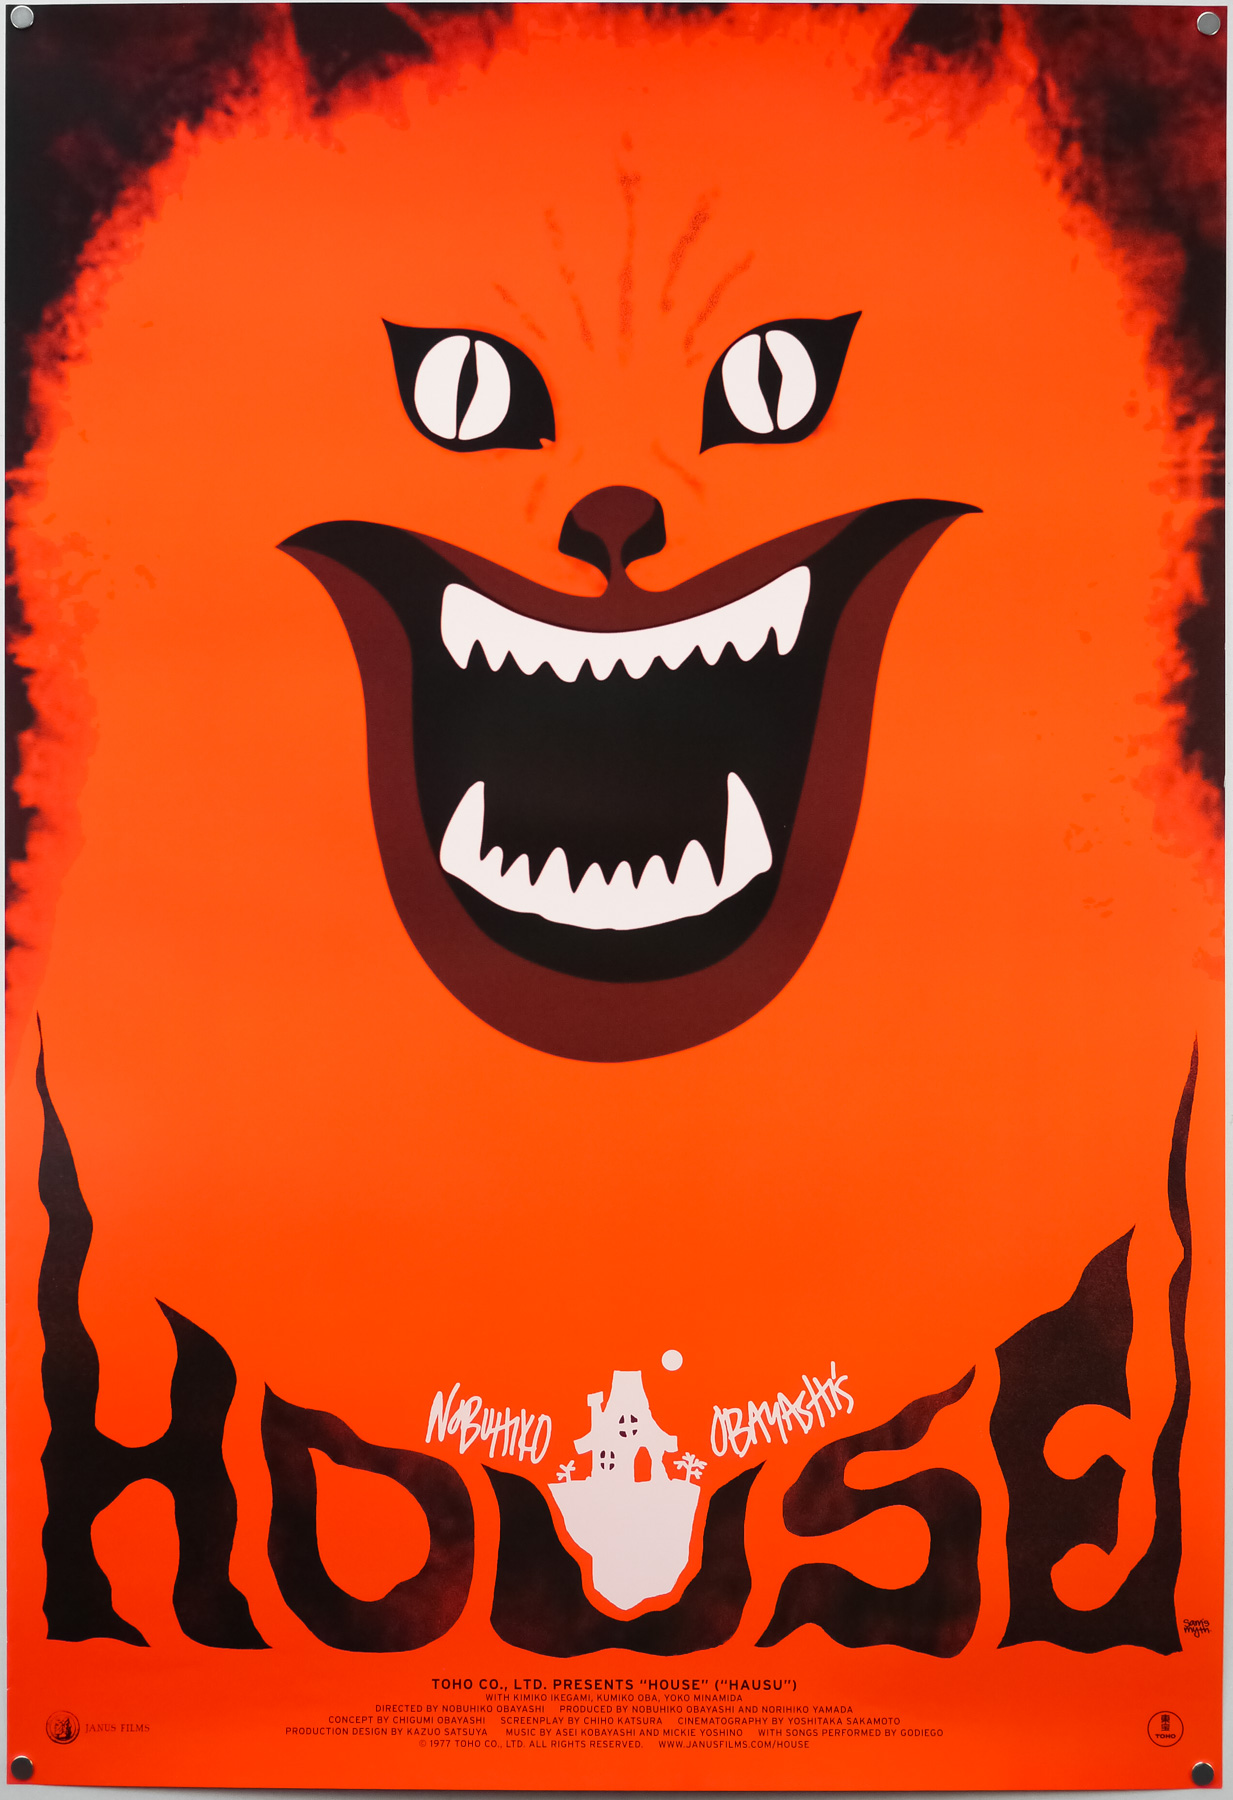 The US one sheet for the 2010 re-release of Nobuhiko Obayashi's House, designed by Sam's Myth